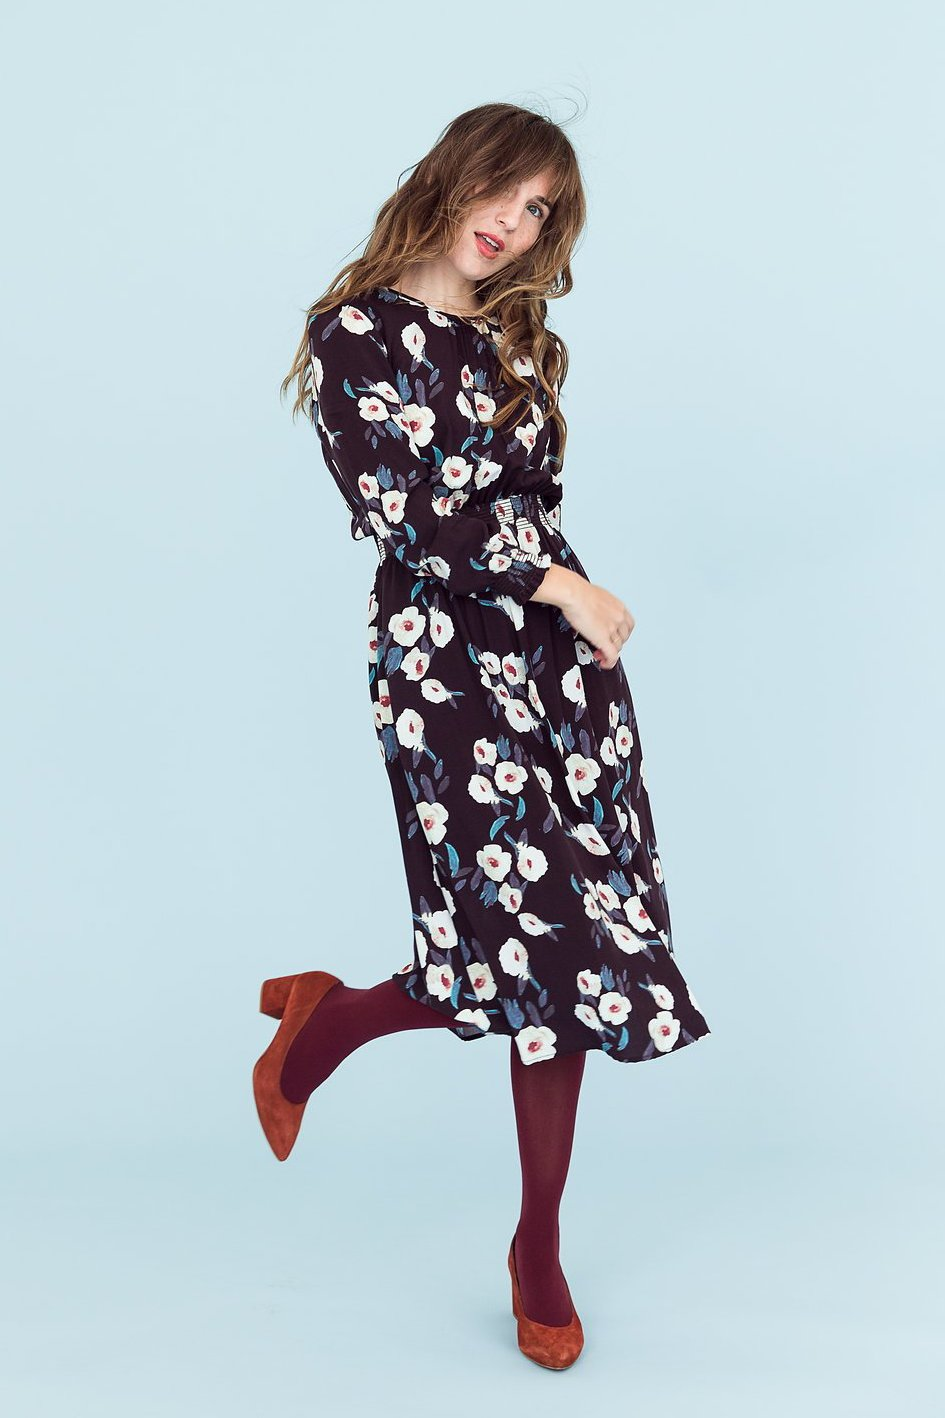 Sonnet James - SUNDAY - KATRIEN FLORAL - Dress,Sunday Floral